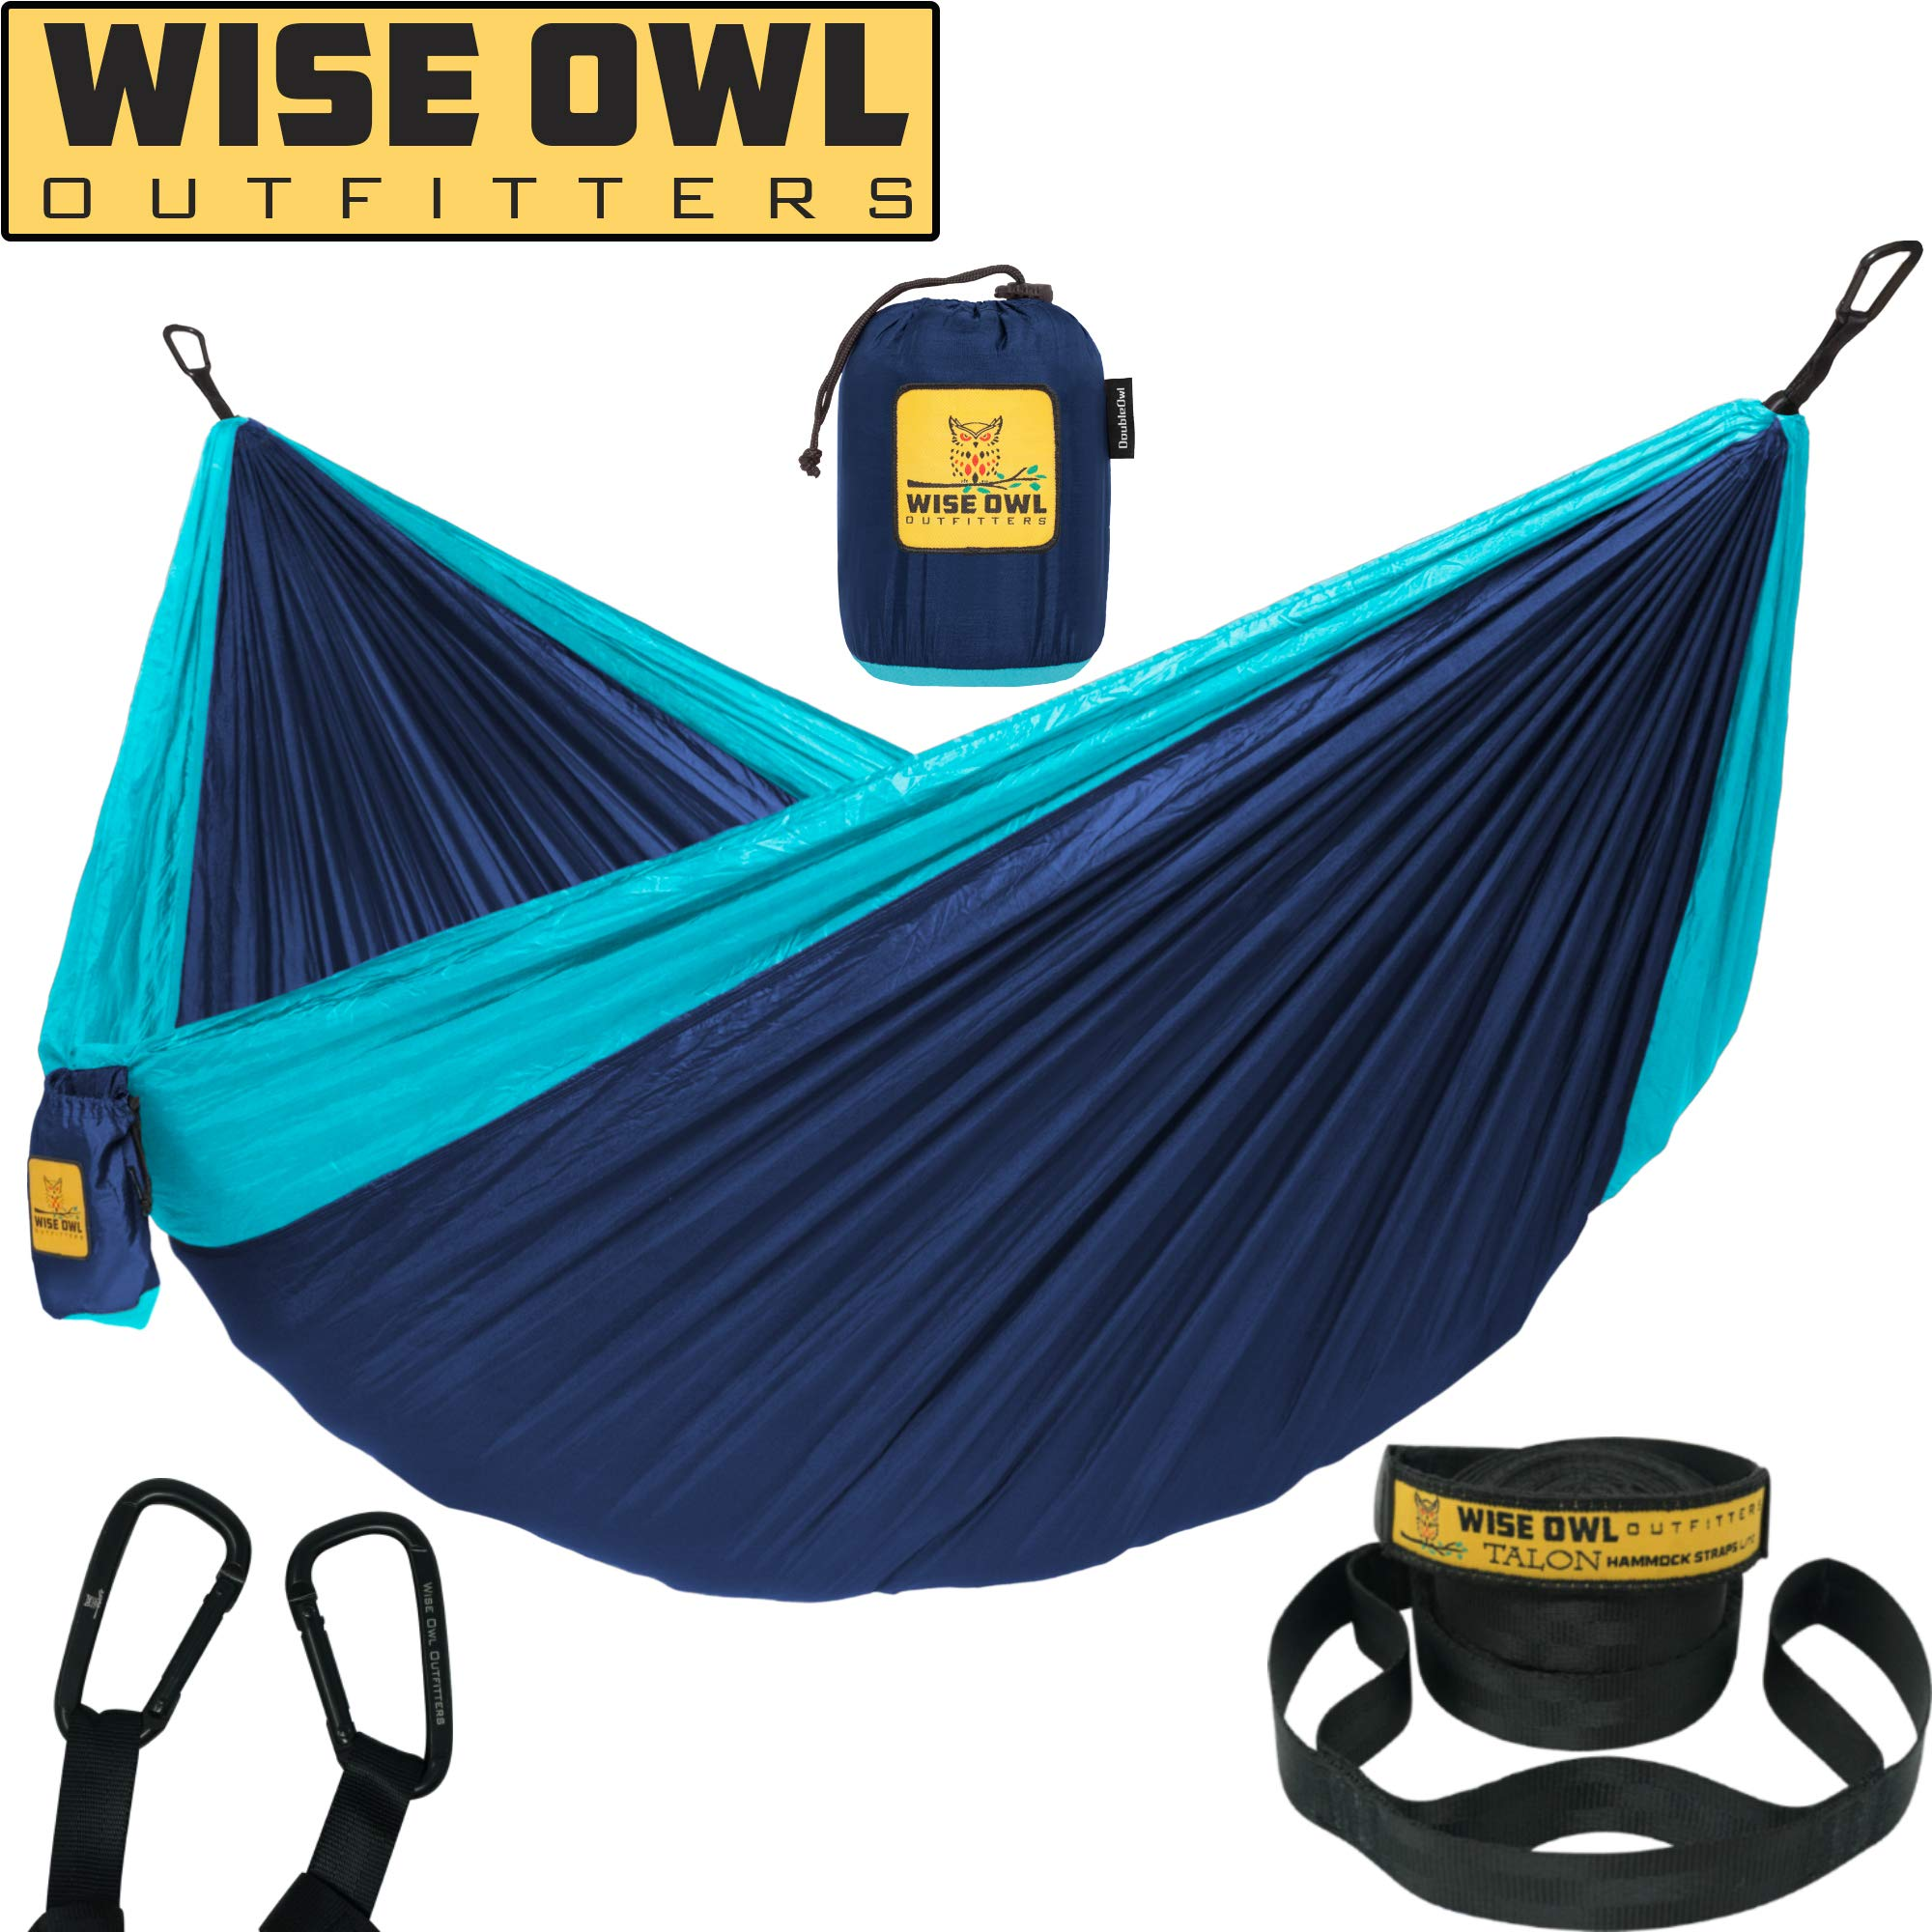 Wise Owl Outfitters Hammock for Camping Single & Double Hammocks Gear for The Outdoors Backpacking Survival or Travel - Portable Lightweight Parachute Nylon DO Navy & Lt Blue by Wise Owl Outfitters